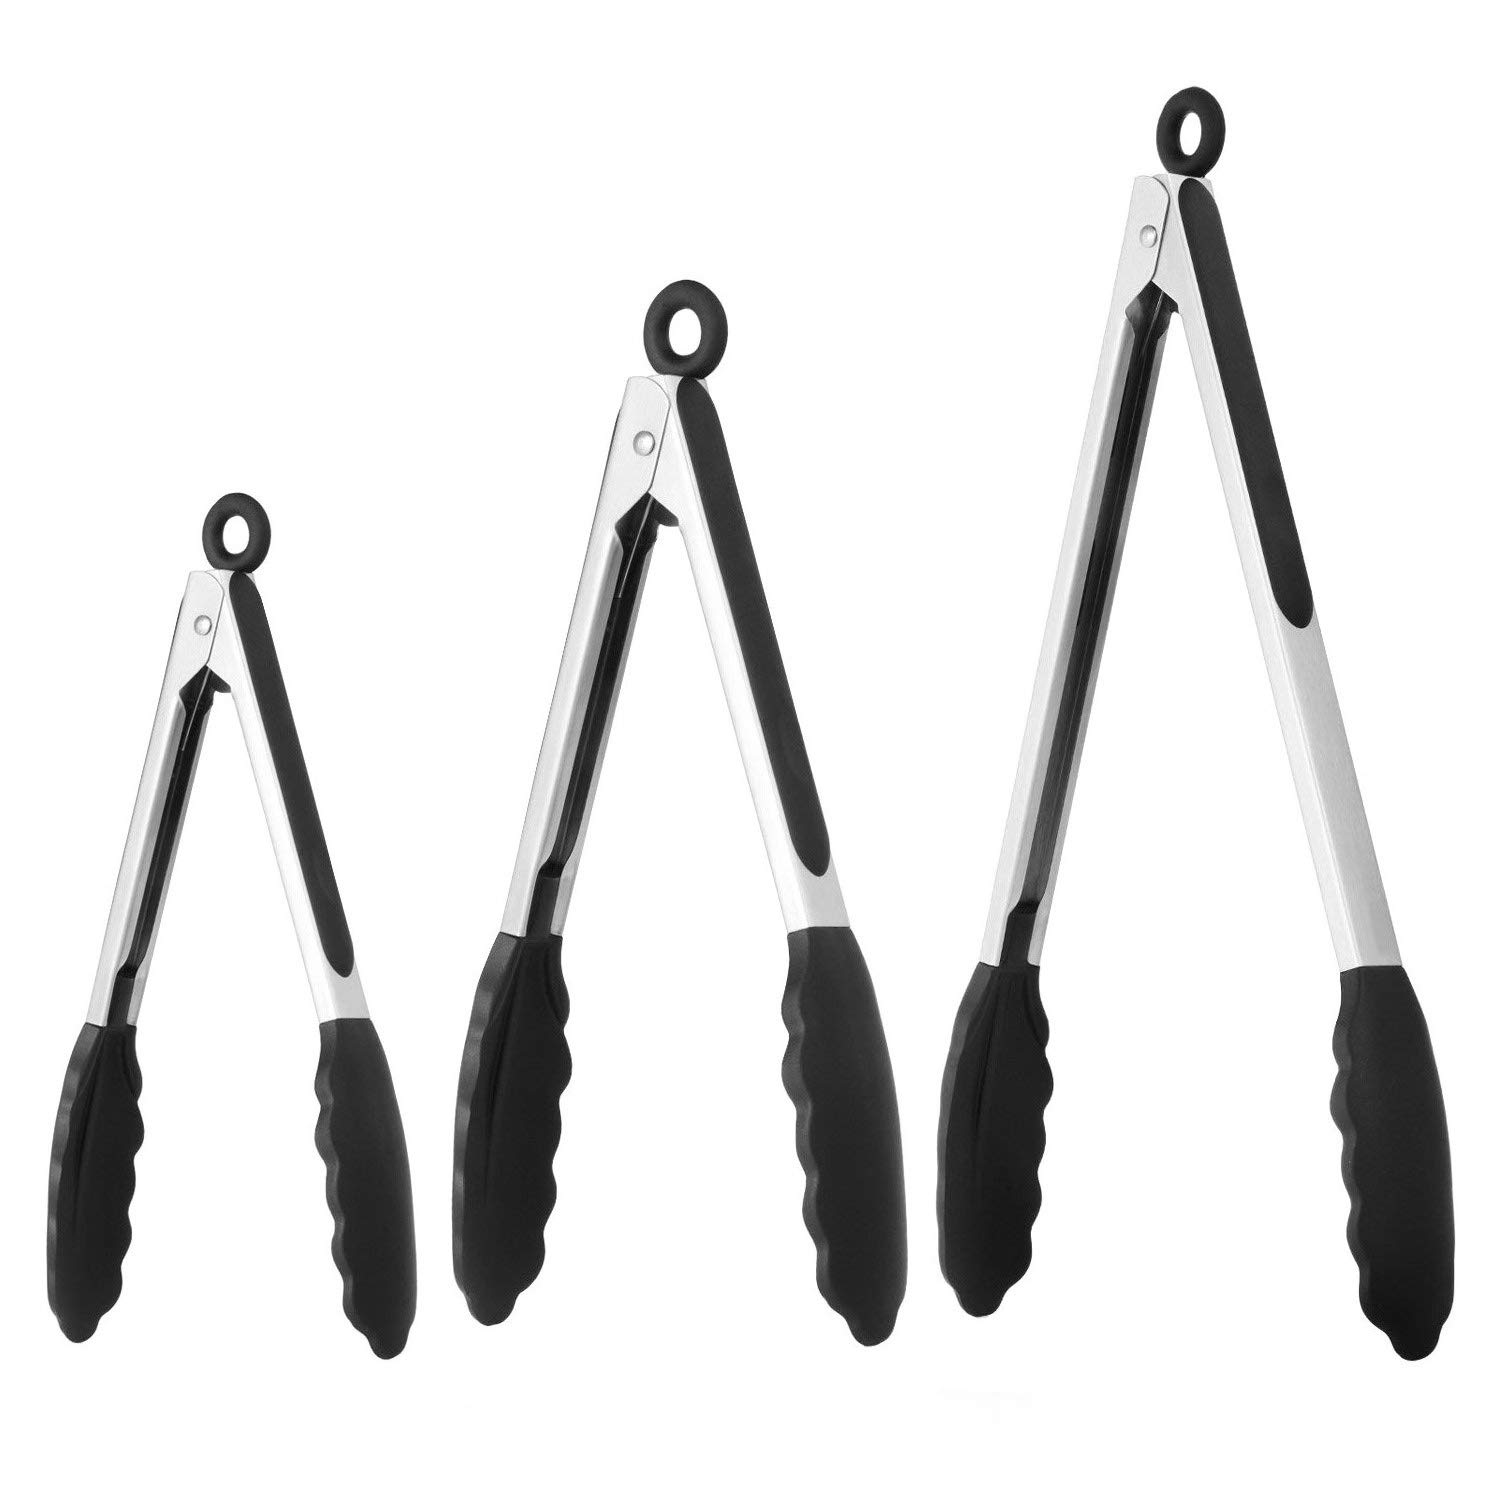 Kitchen Tongs - Set of 3-7, 9, 12 Inch,Silicone Food Tongs-Non-slip, Stainless Steel Cooking Tongs-Smart Locking Clip-Heat Resistant,Food Grade-Handy Utensils For Barbecue,Frying,Salad,Ice (Black) US-zhongchuang